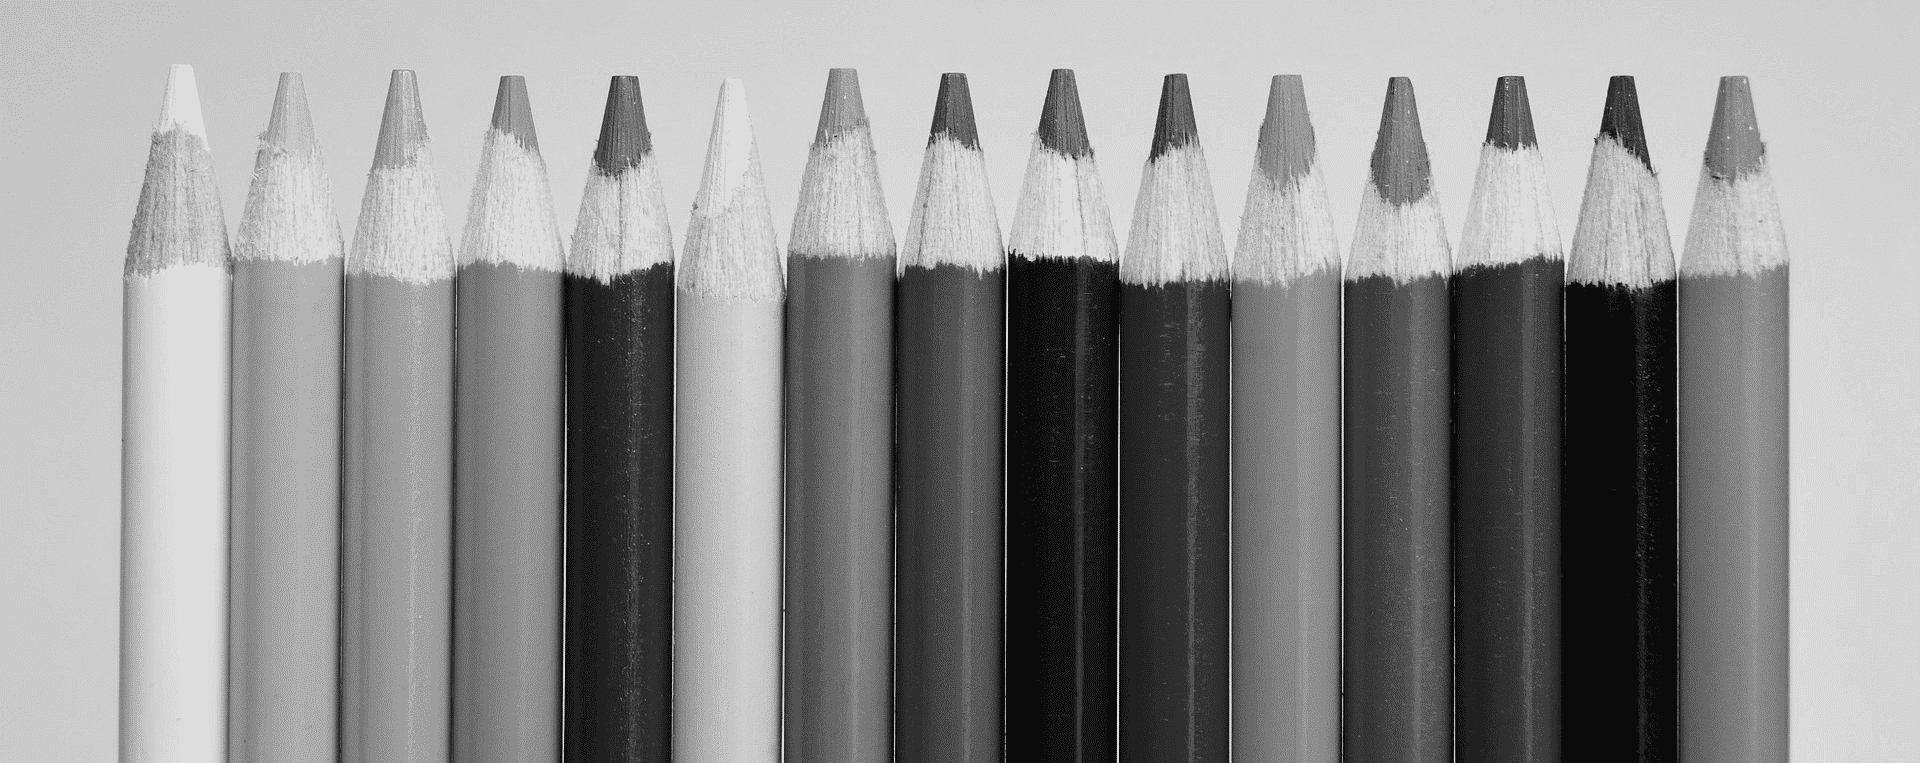 Colored pencils, all in grayscale